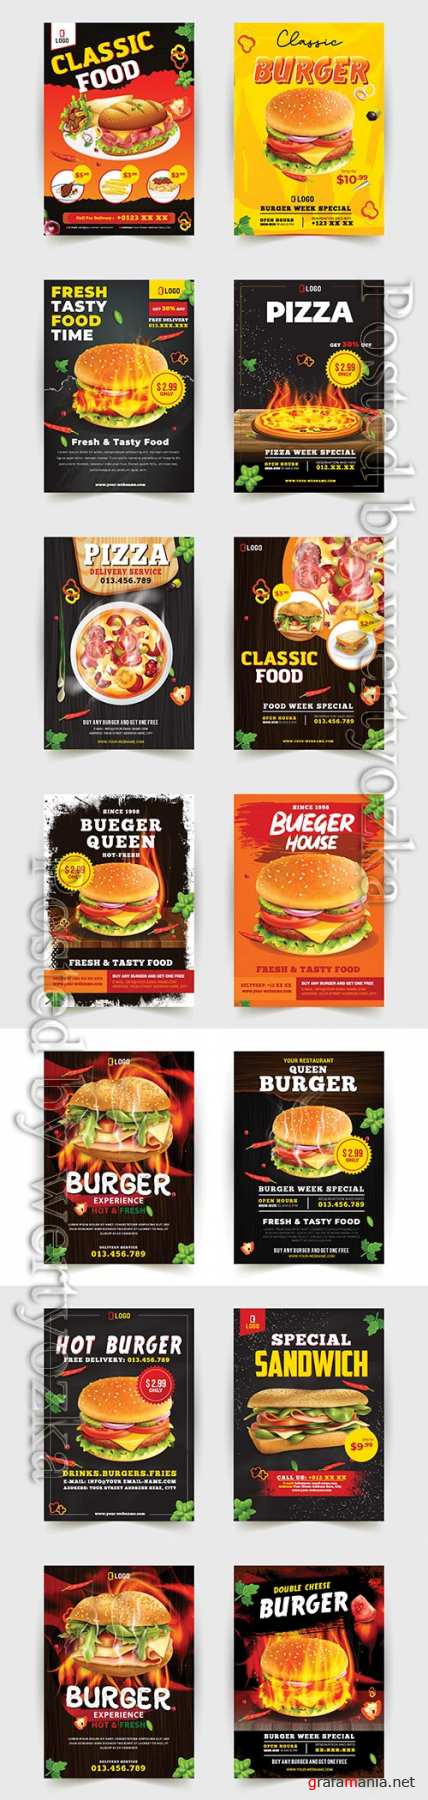 Fast food flyer design template cooking, cafe and restaurant menu